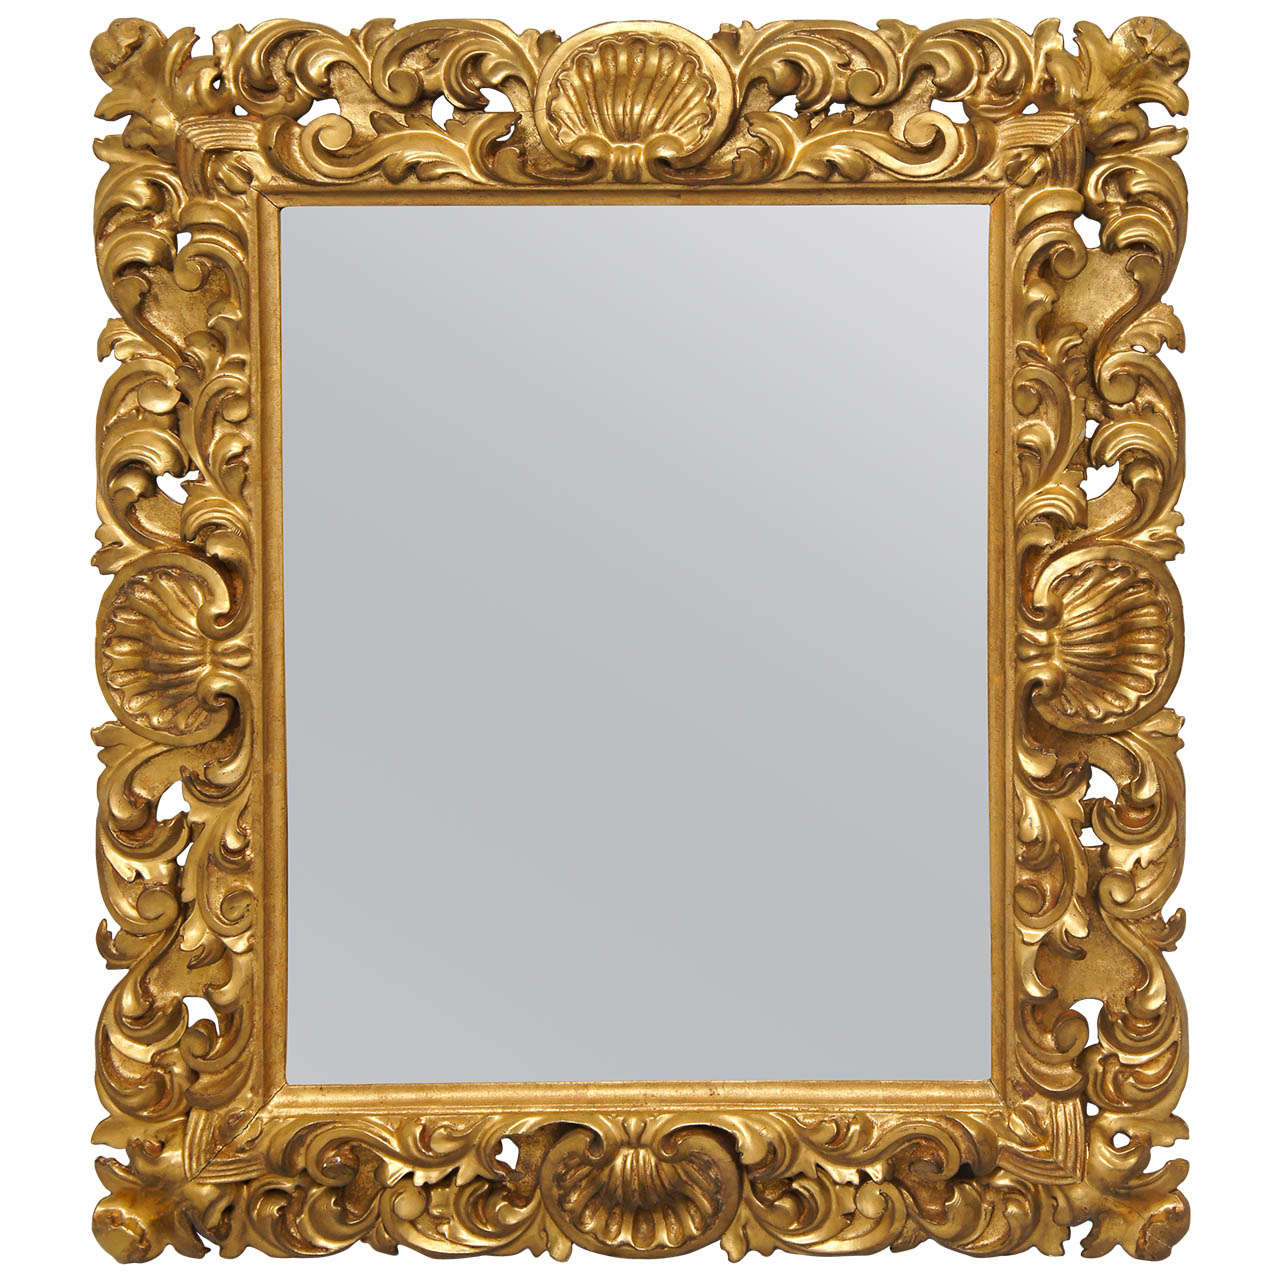 florentine carved gilt wood mirror frame at 1stdibs - Mirror Frame